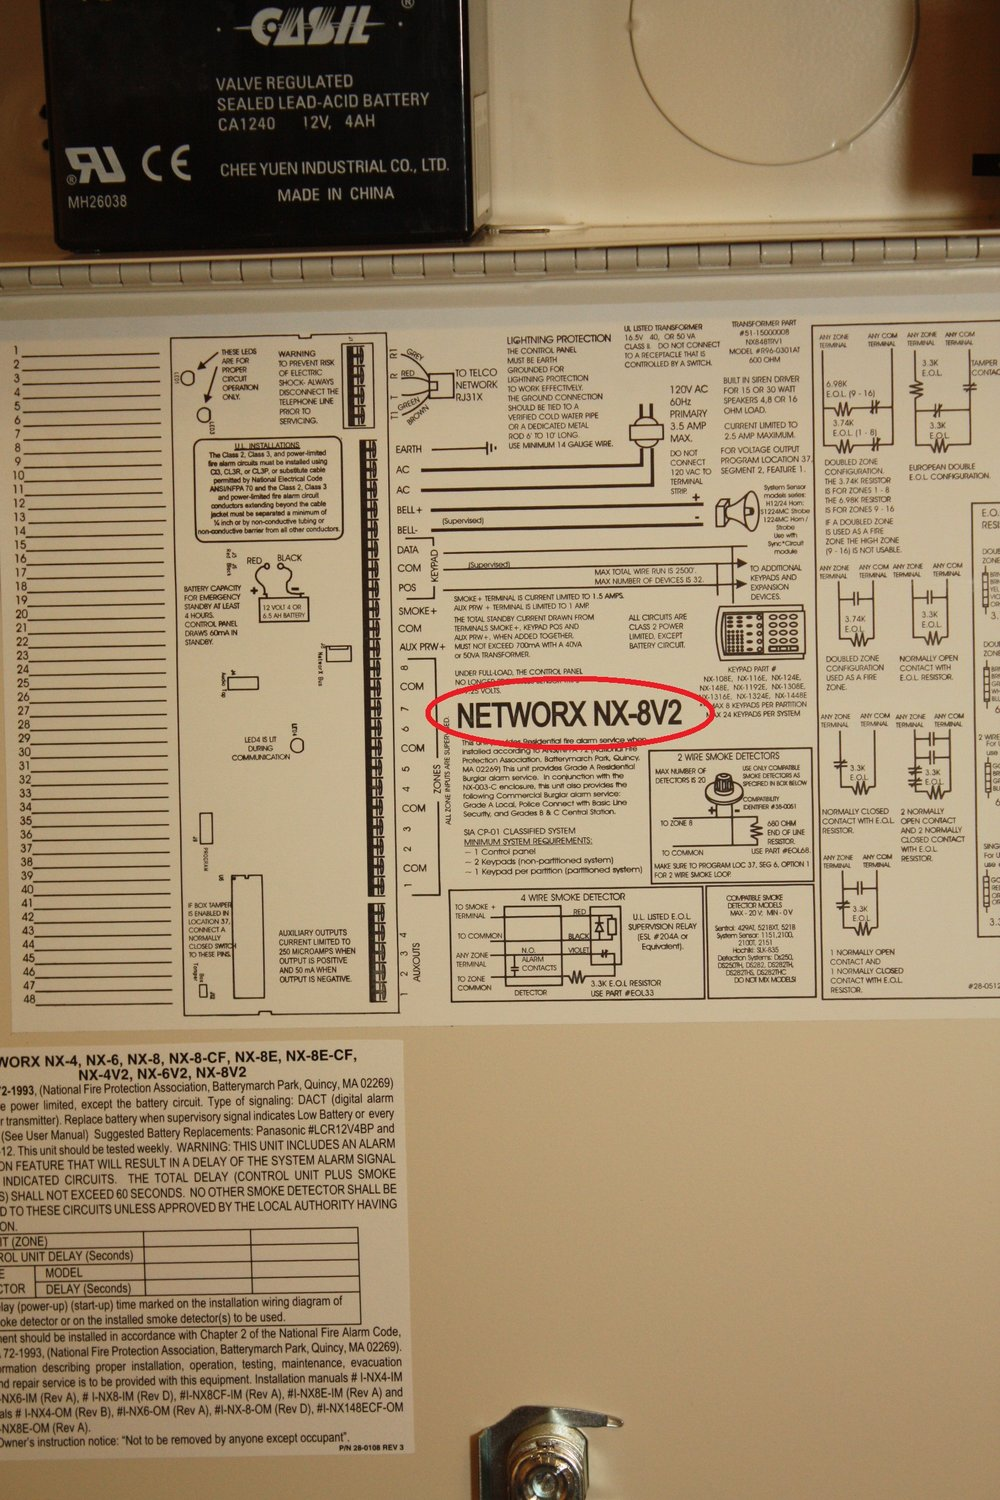 Hookup panel diagram for the Caddex NX 1448e Custom Alpha alarm system showing the location of the serial number - NCA Alarms Nashville TN